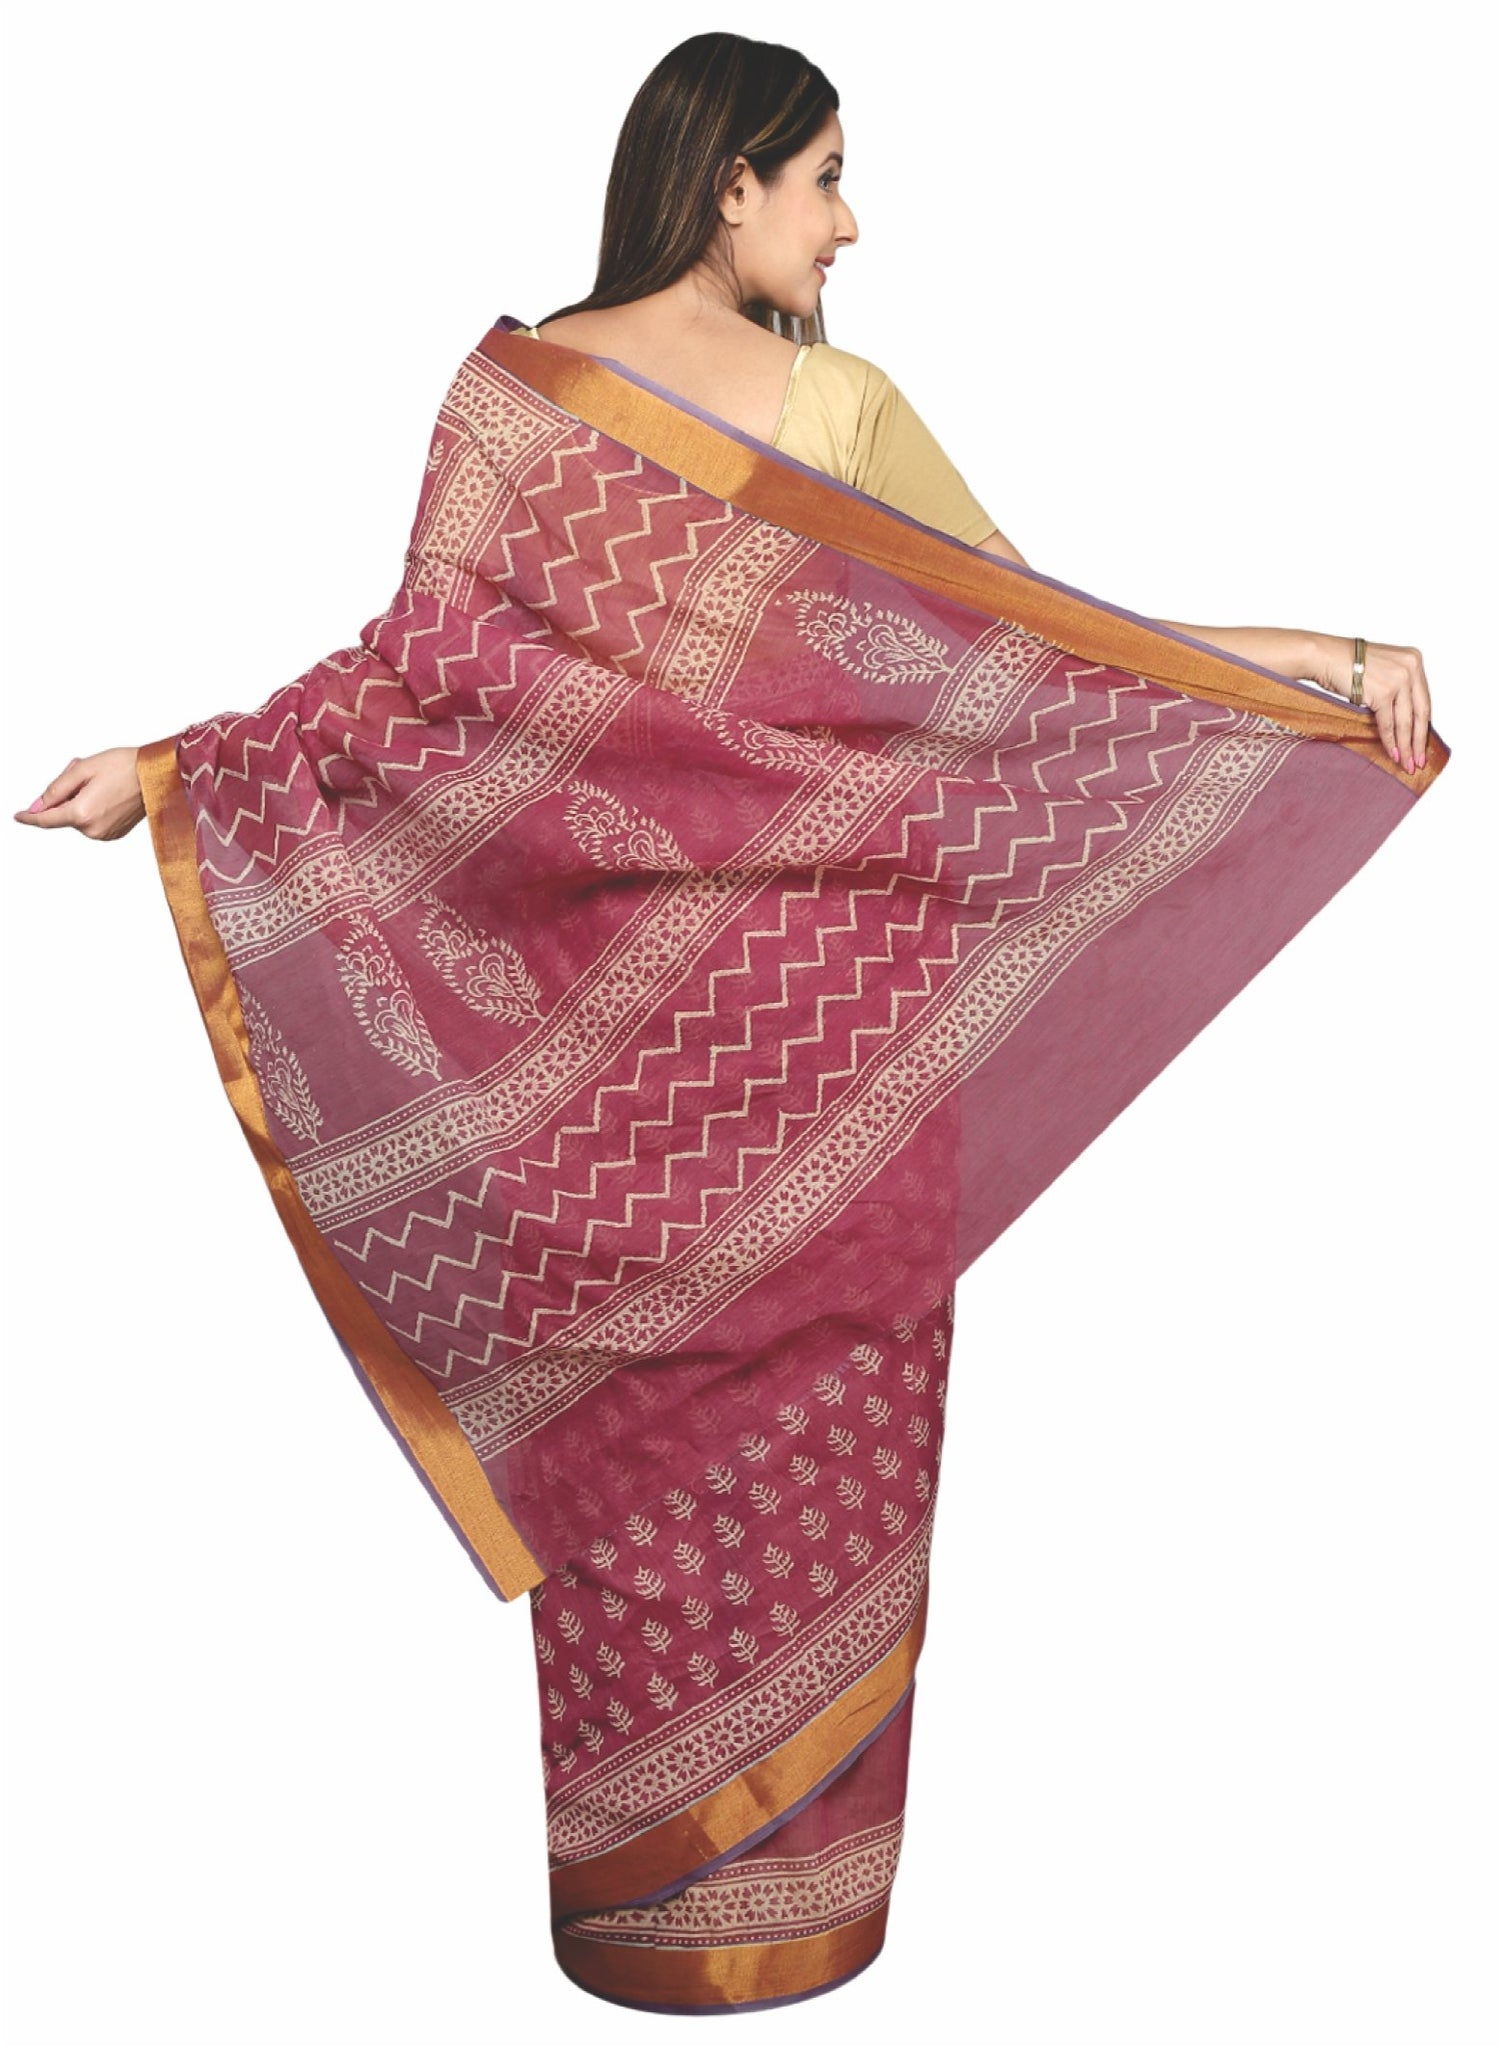 Pink & Off-White Hand Block Print Cotton Kota Doria Supernet Handcrafted Saree-Saree-Kalakari India-RDSNSA0031-Geographical Indication, Hand Blocks, Hand Crafted, Heritage Prints, Kota Doria, Sanganeri, Sarees, Sustainable Fabrics-[Linen,Ethnic,wear,Fashionista,Handloom,Handicraft,Indigo,blockprint,block,print,Cotton,Chanderi,Blue, latest,classy,party,bollywood,trendy,summer,style,traditional,formal,elegant,unique,style,hand,block,print, dabu,booti,gift,present,glamorous,affordable,collectible,S